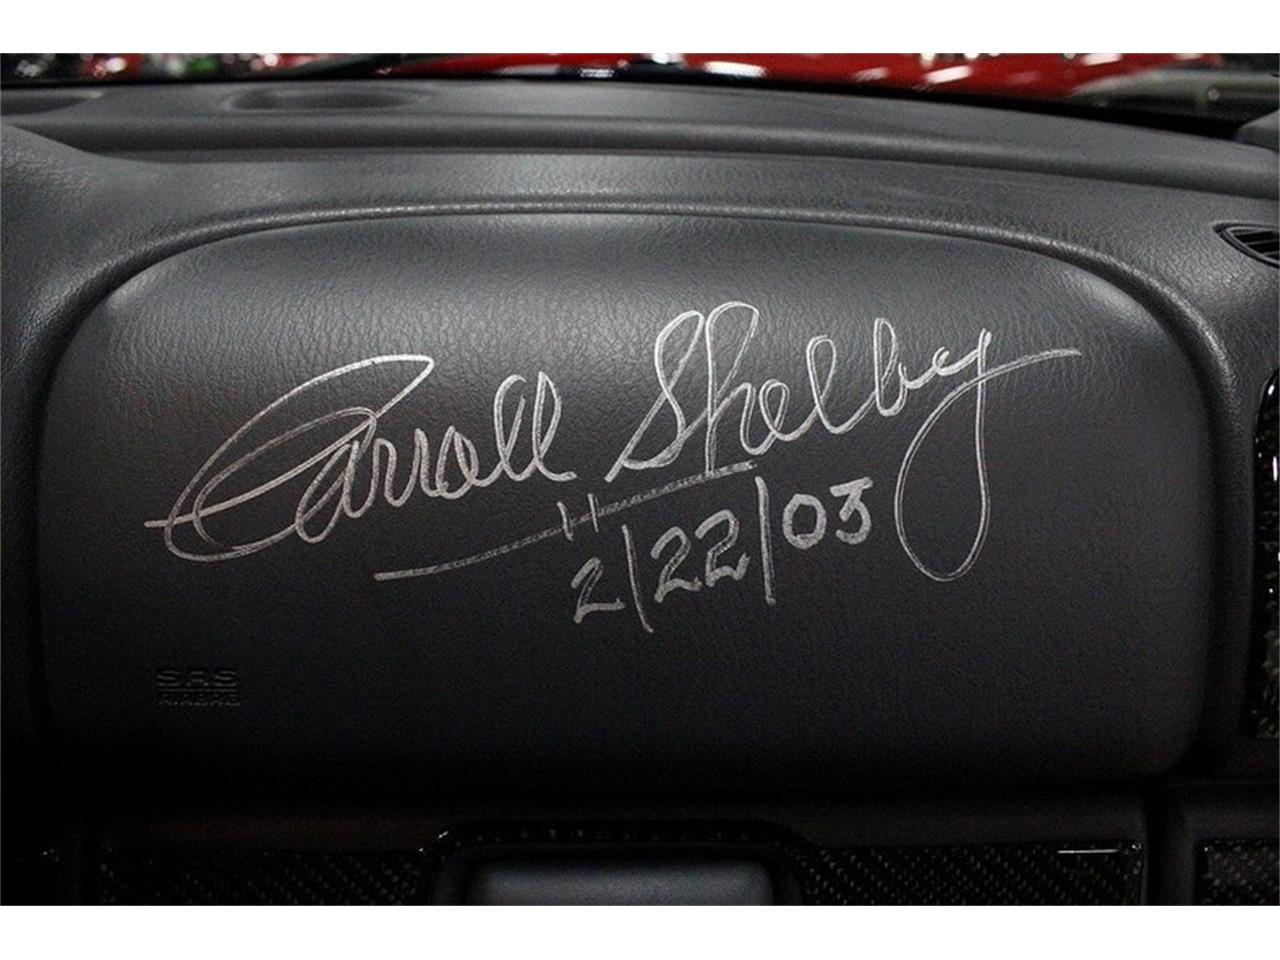 Large Picture of '99 Dodge Durango Shelby SP-360 located in Kentwood Michigan - $31,900.00 Offered by GR Auto Gallery - MB1Y